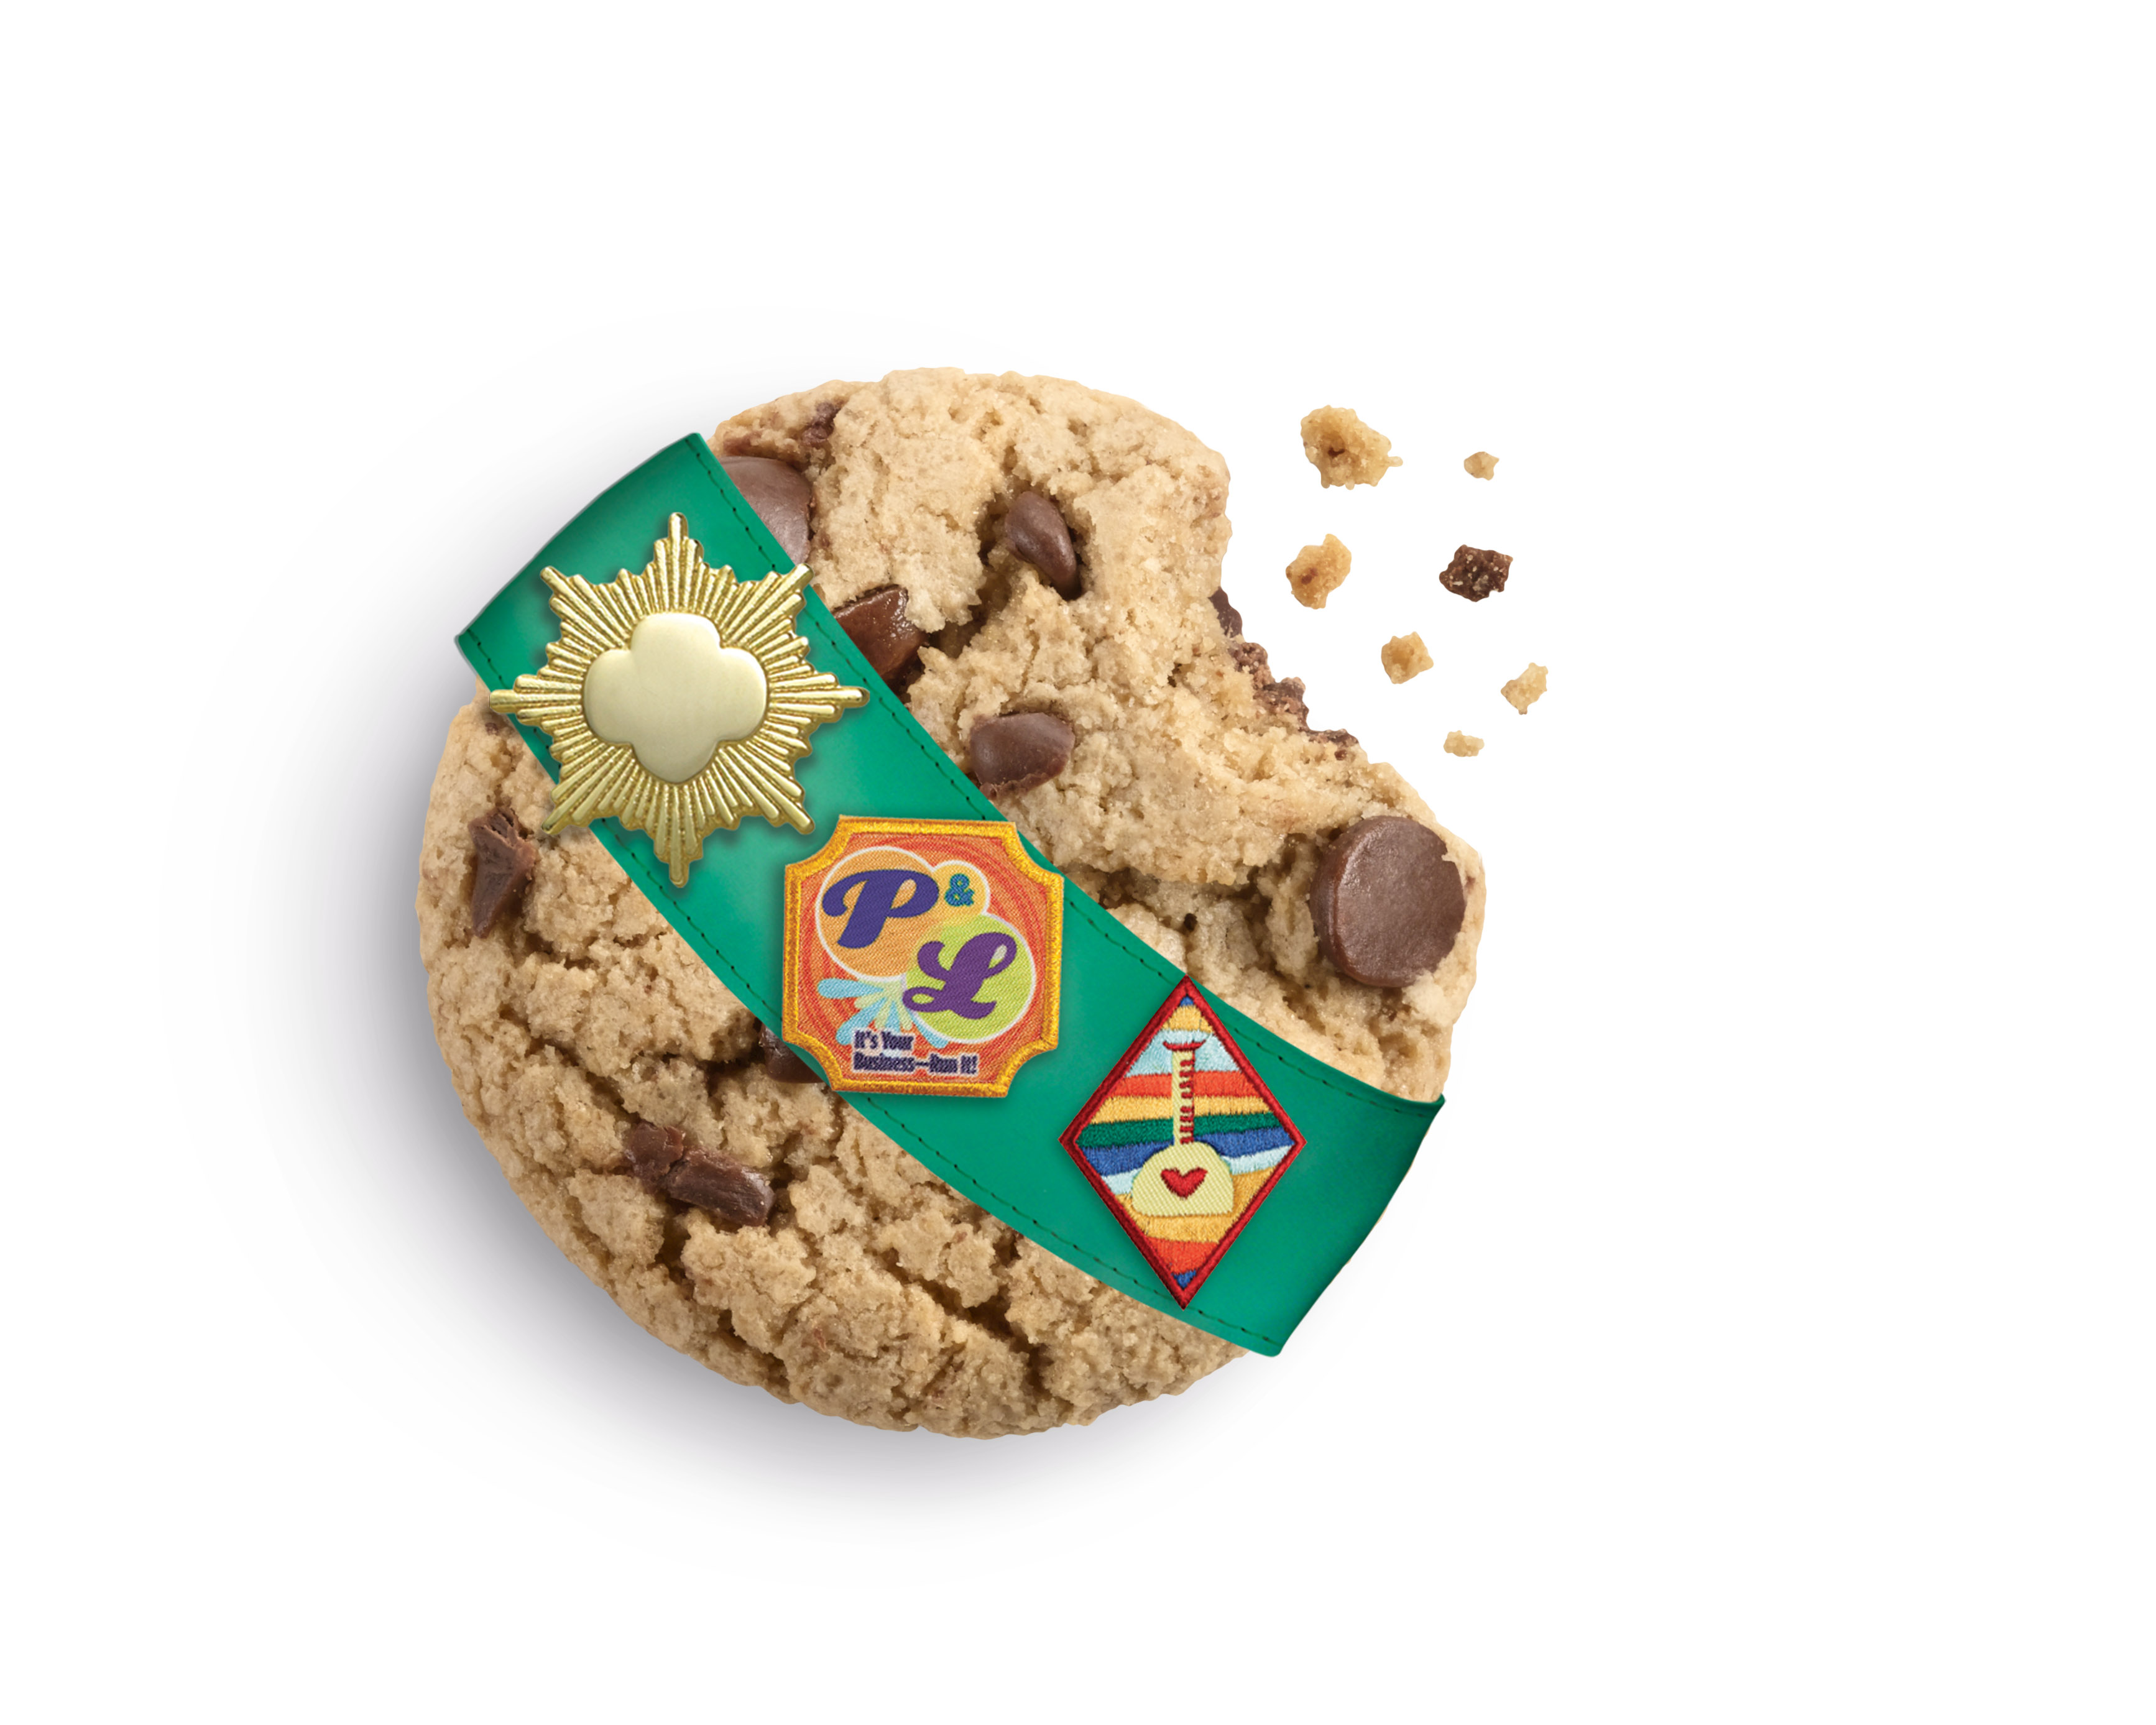 The Girl Scouts' new cookie flavor: caramel chocolate chip.